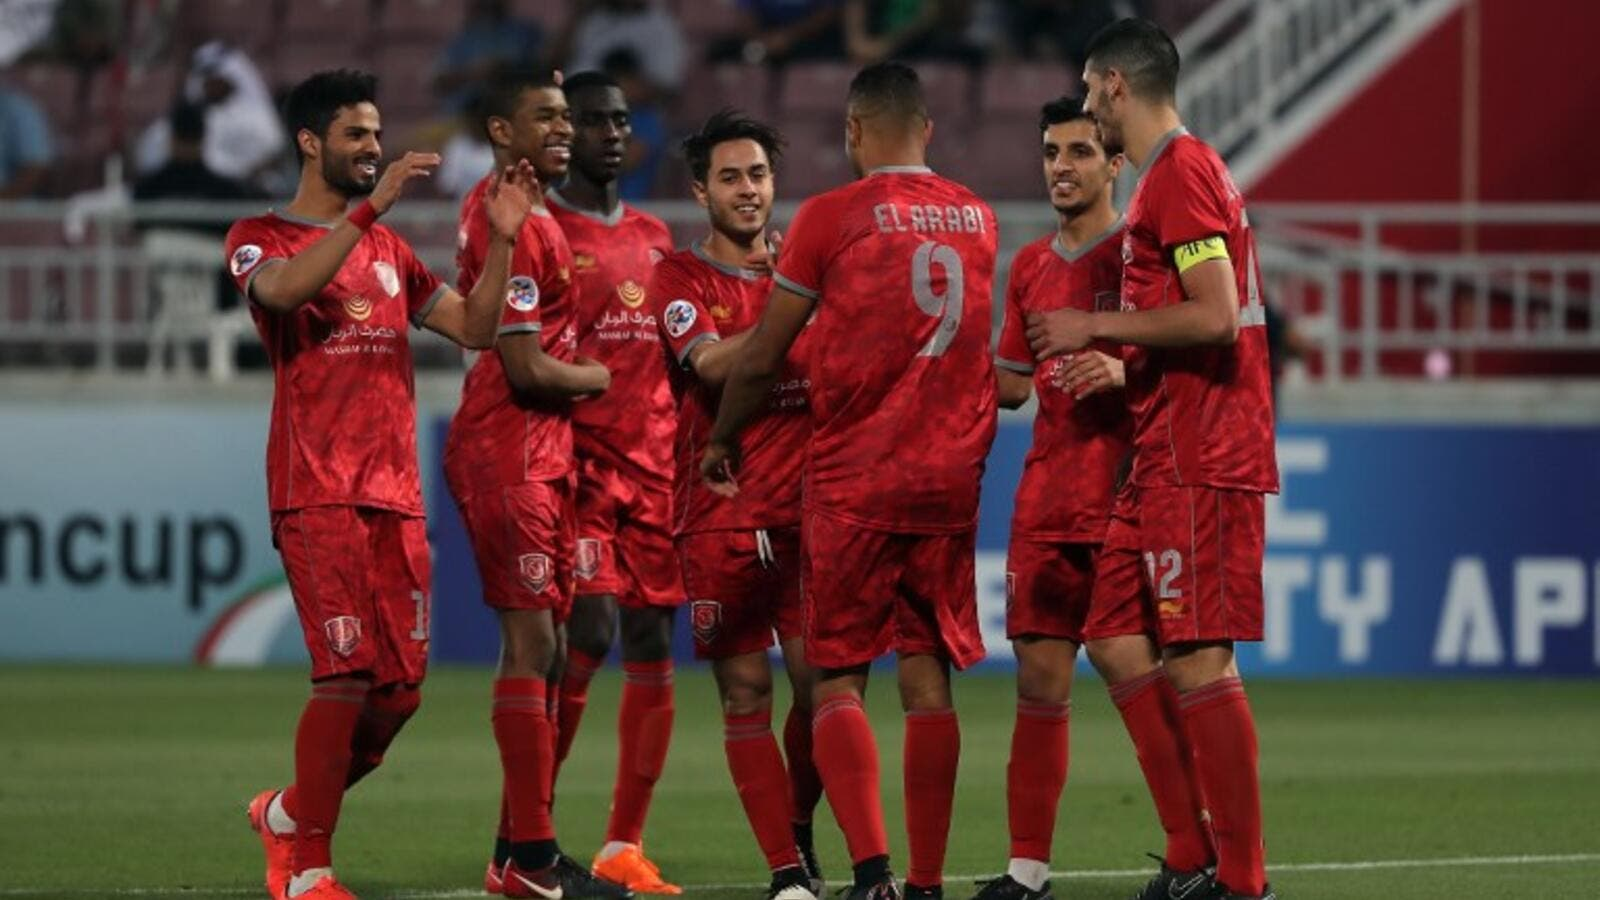 Duhail's players celebrate scoring during their AFC Champions League match between Qatar's Al-Duhail and Emirates' Al-Wahda at the Abdullah bin Khalifa Stadium in Doha on April 17, 2018.